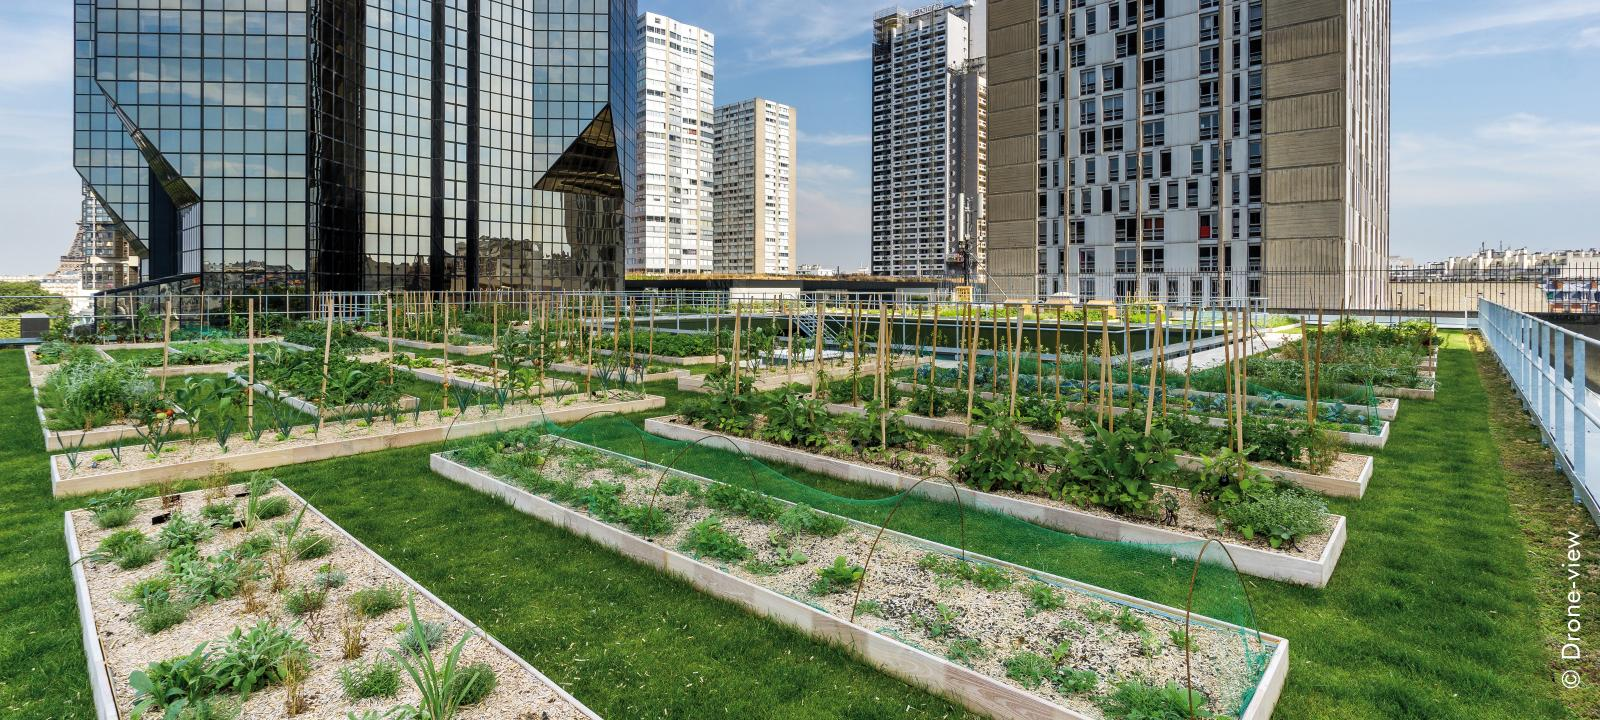 Le Cordon Bleu Paris Zinco Green Roof Systems